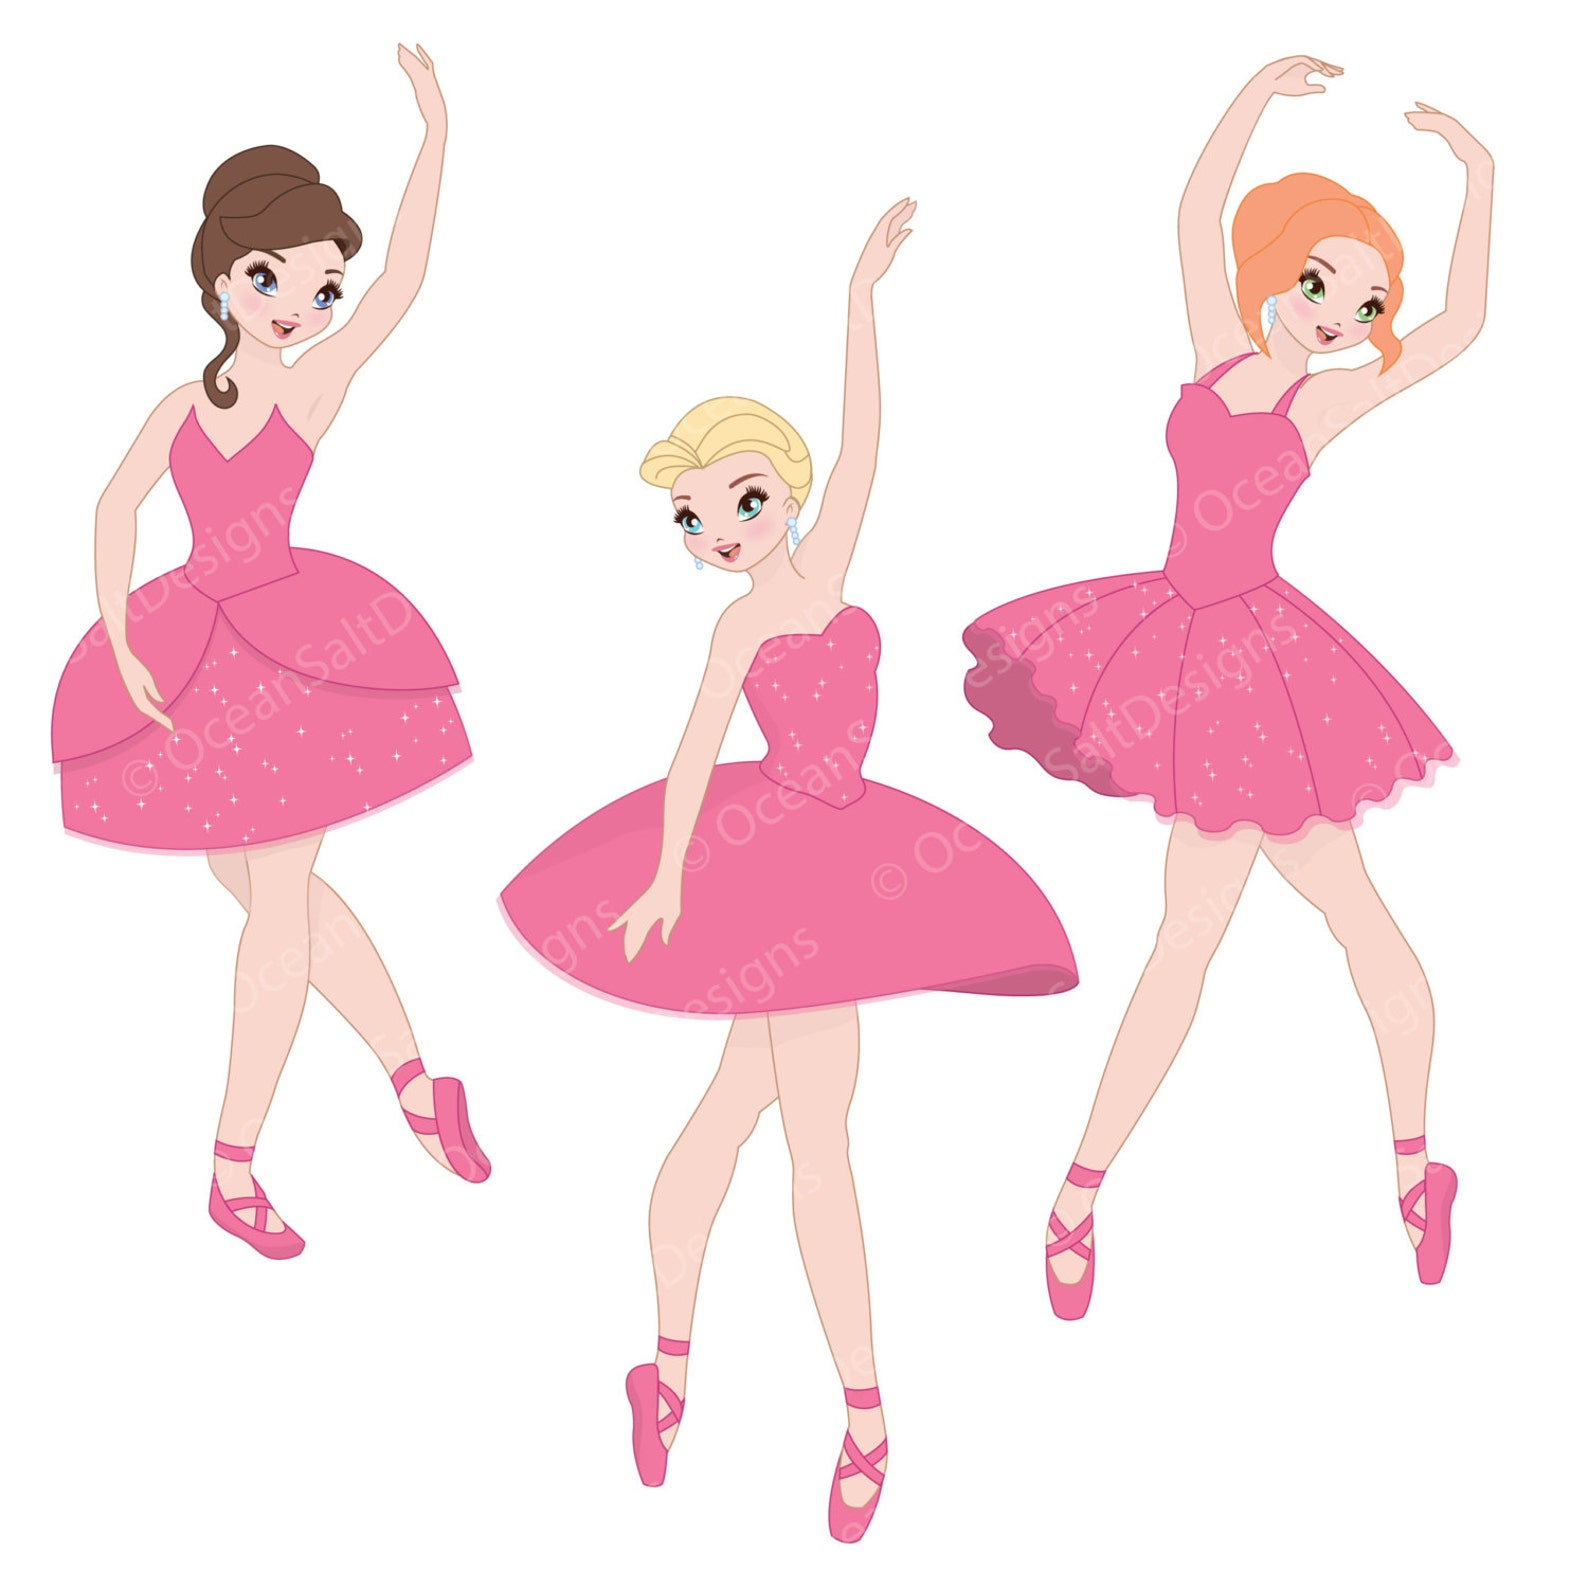 ballerina party clipart ballet clipart dancing image tutu ballet shoes ballerina invitation eps instant download kids party invi